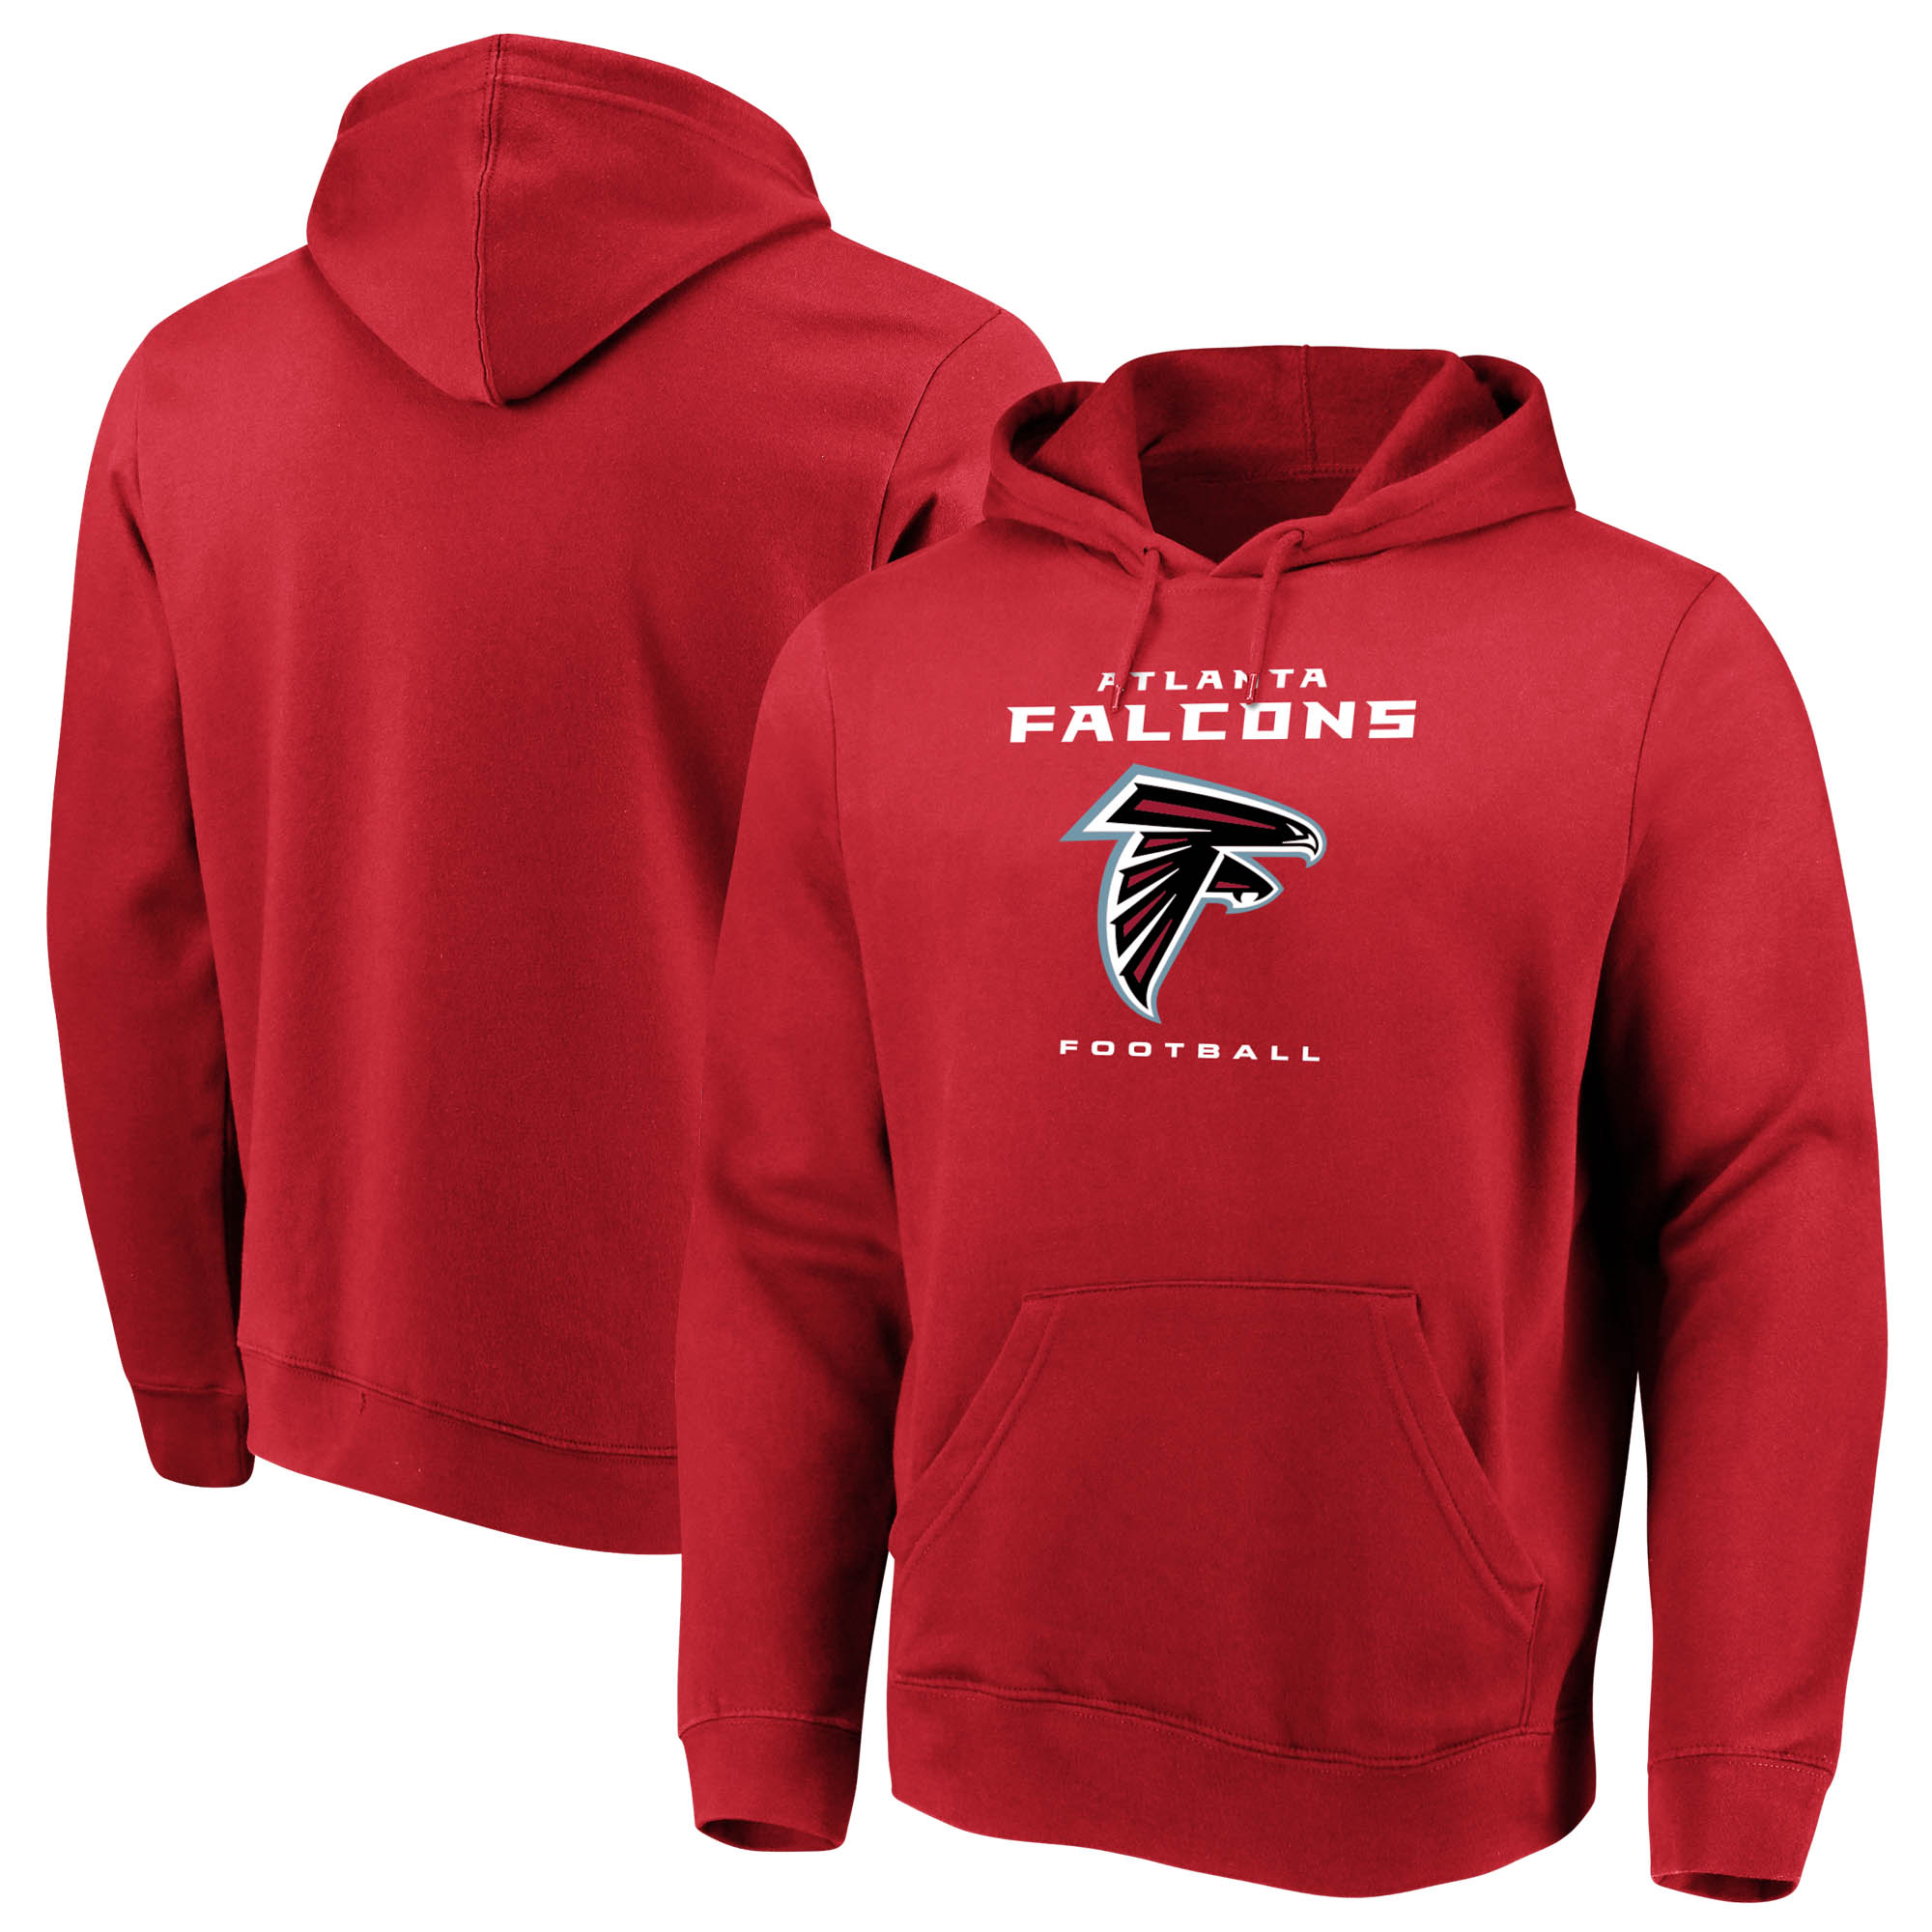 Men's Majestic Red Atlanta Falcons Our Team Pullover Hoodie